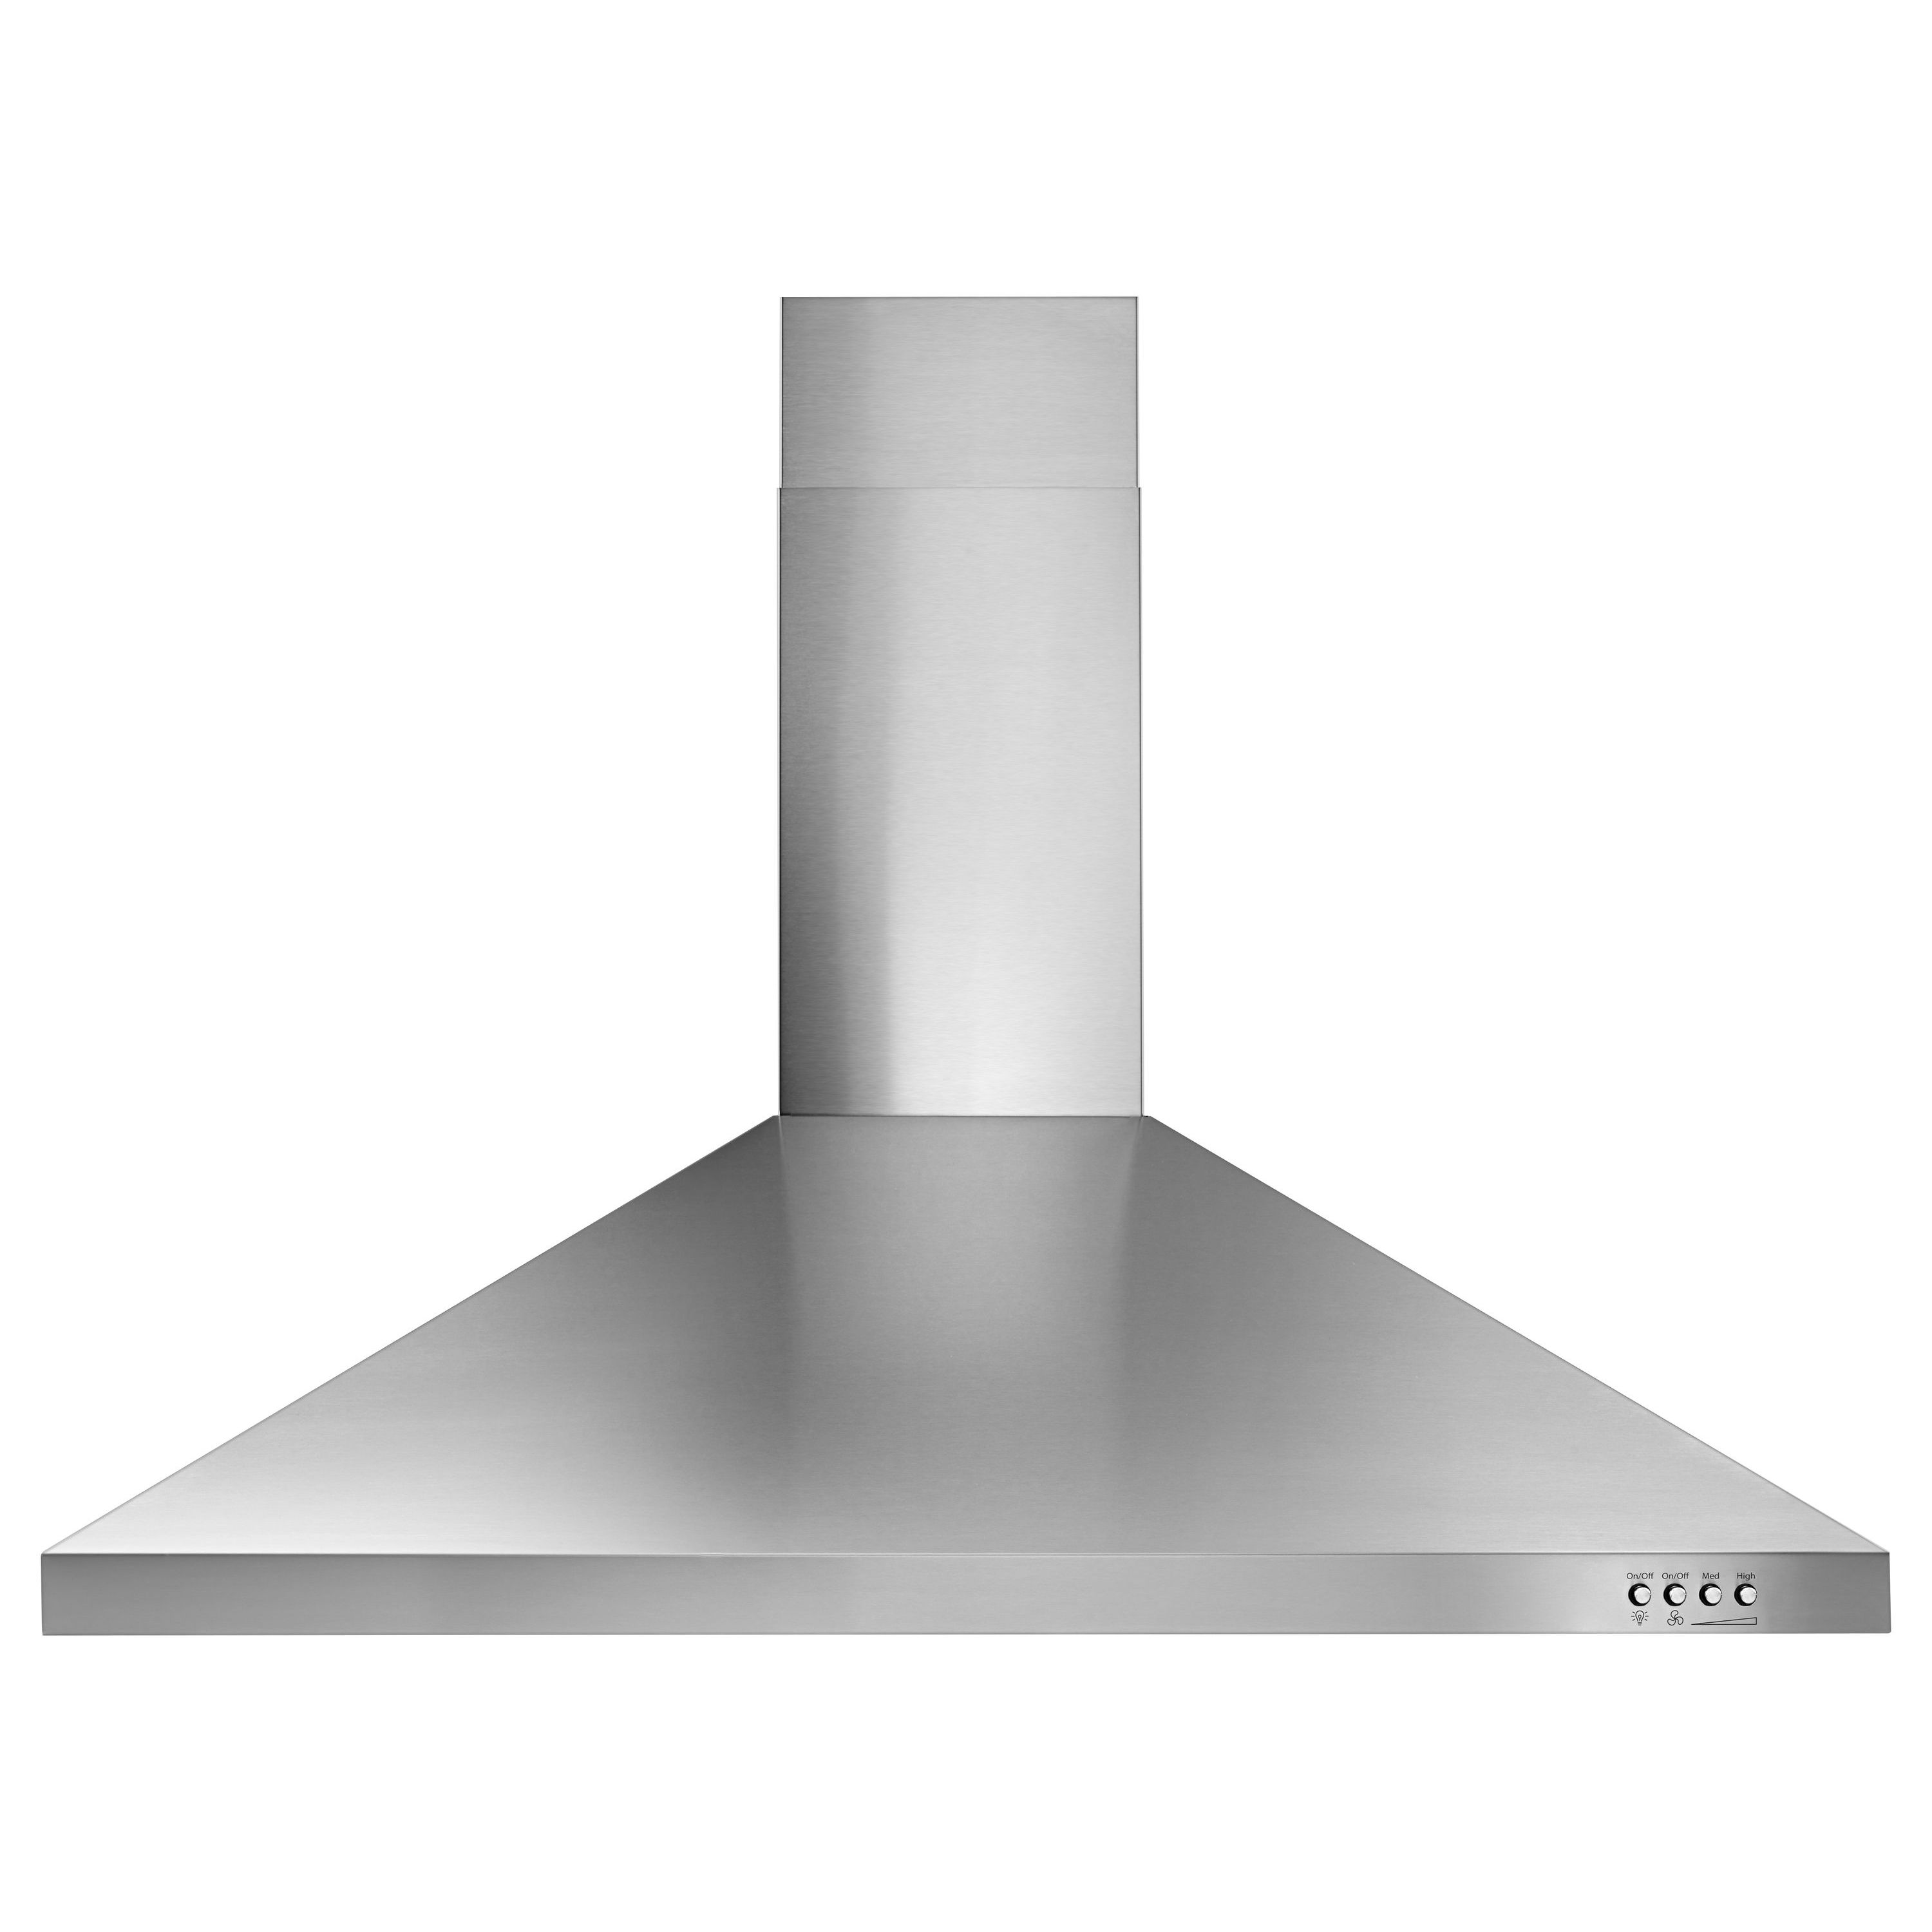 Whirlpool WVW53UC6FS 36 Contemporary Wall Mount Range Hood – Stainless Steel